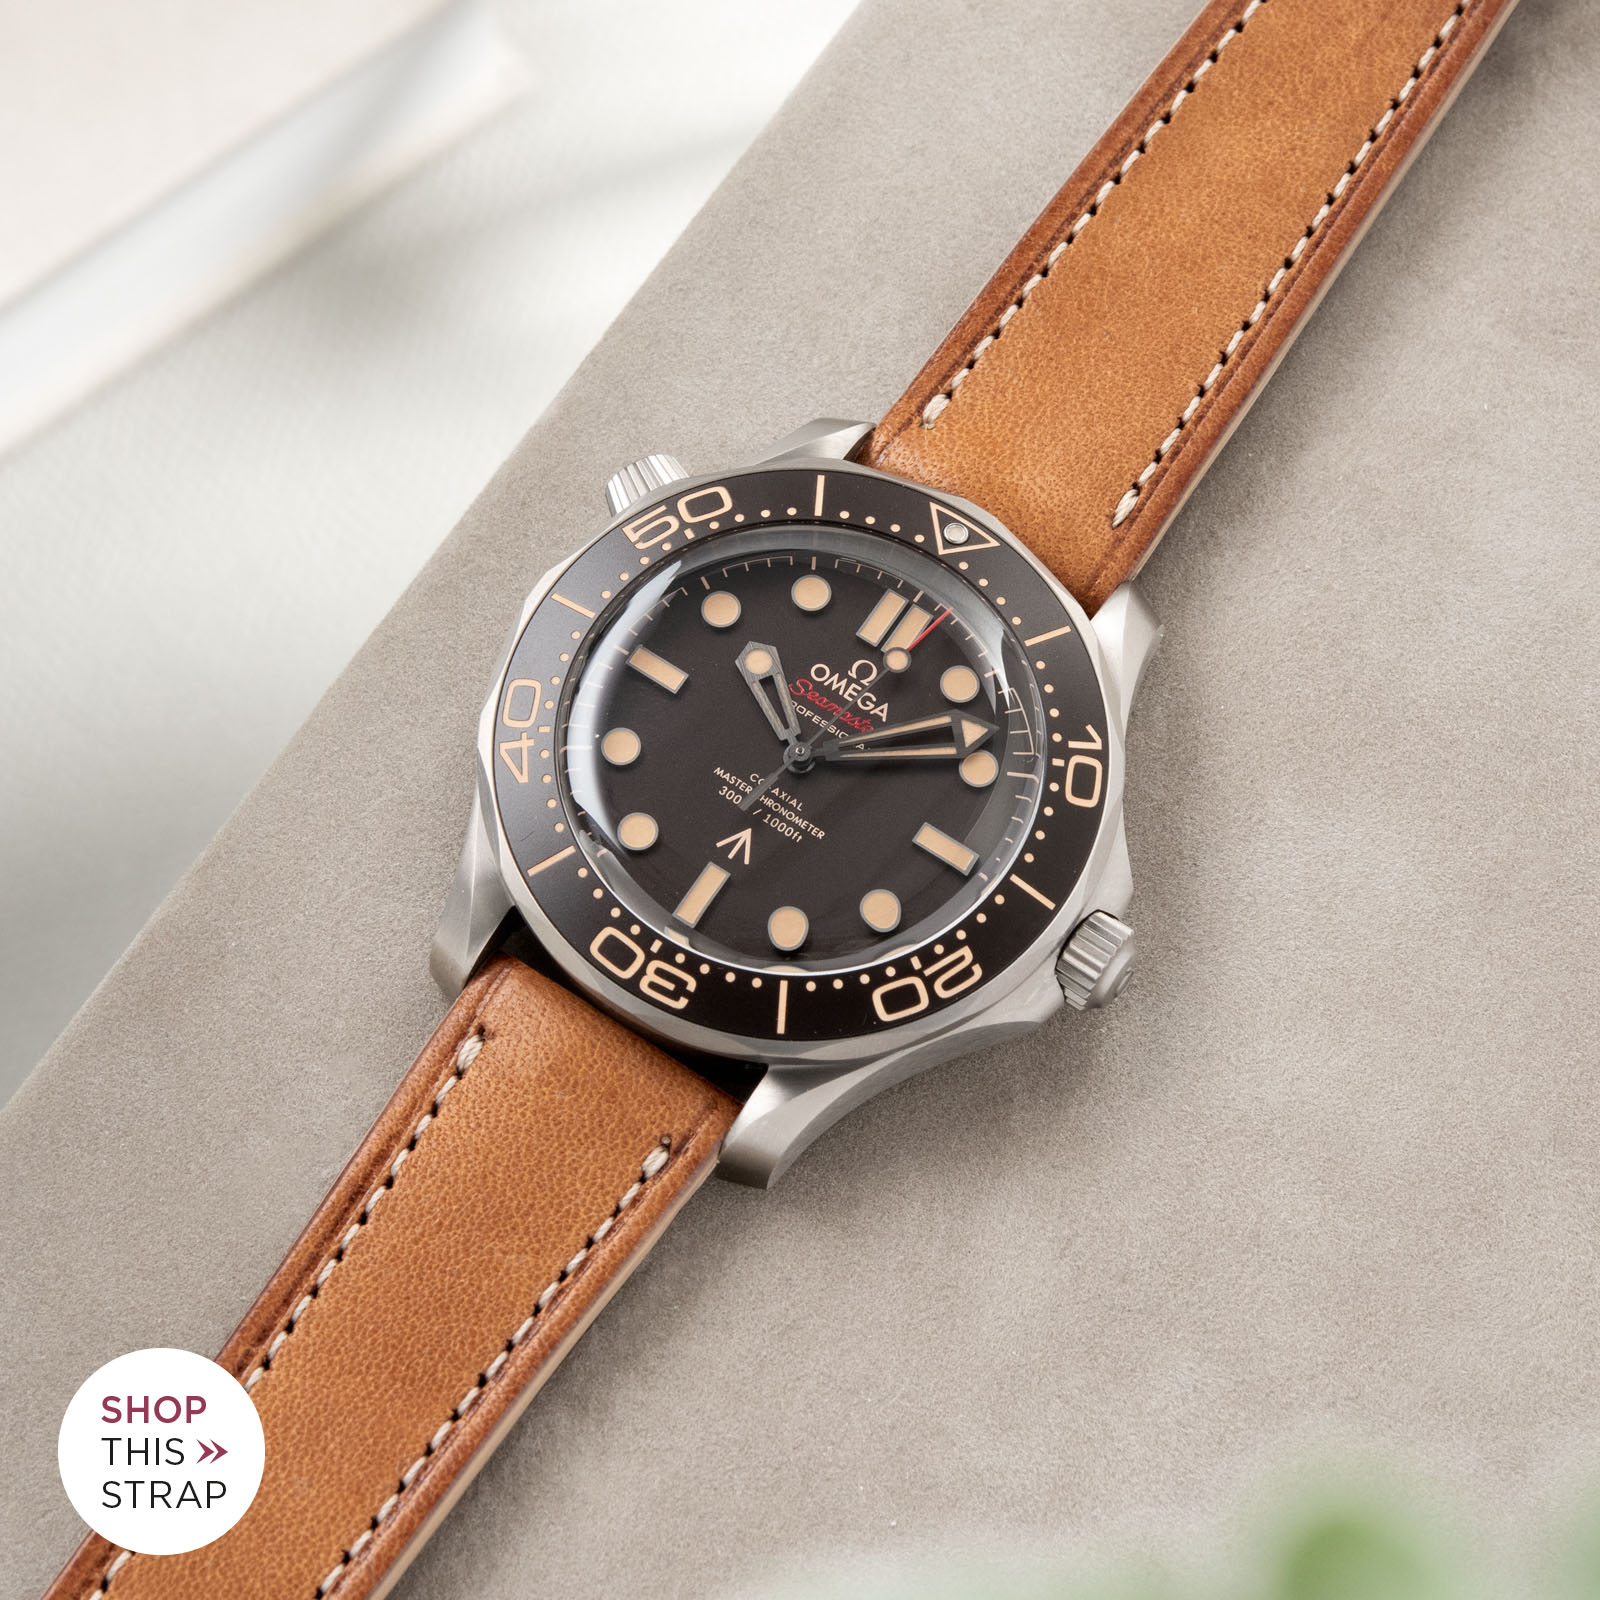 Bulang and Sons_Strapguide_Omega Seamaster_Corsaro Brown Retro Leather Watch Strap